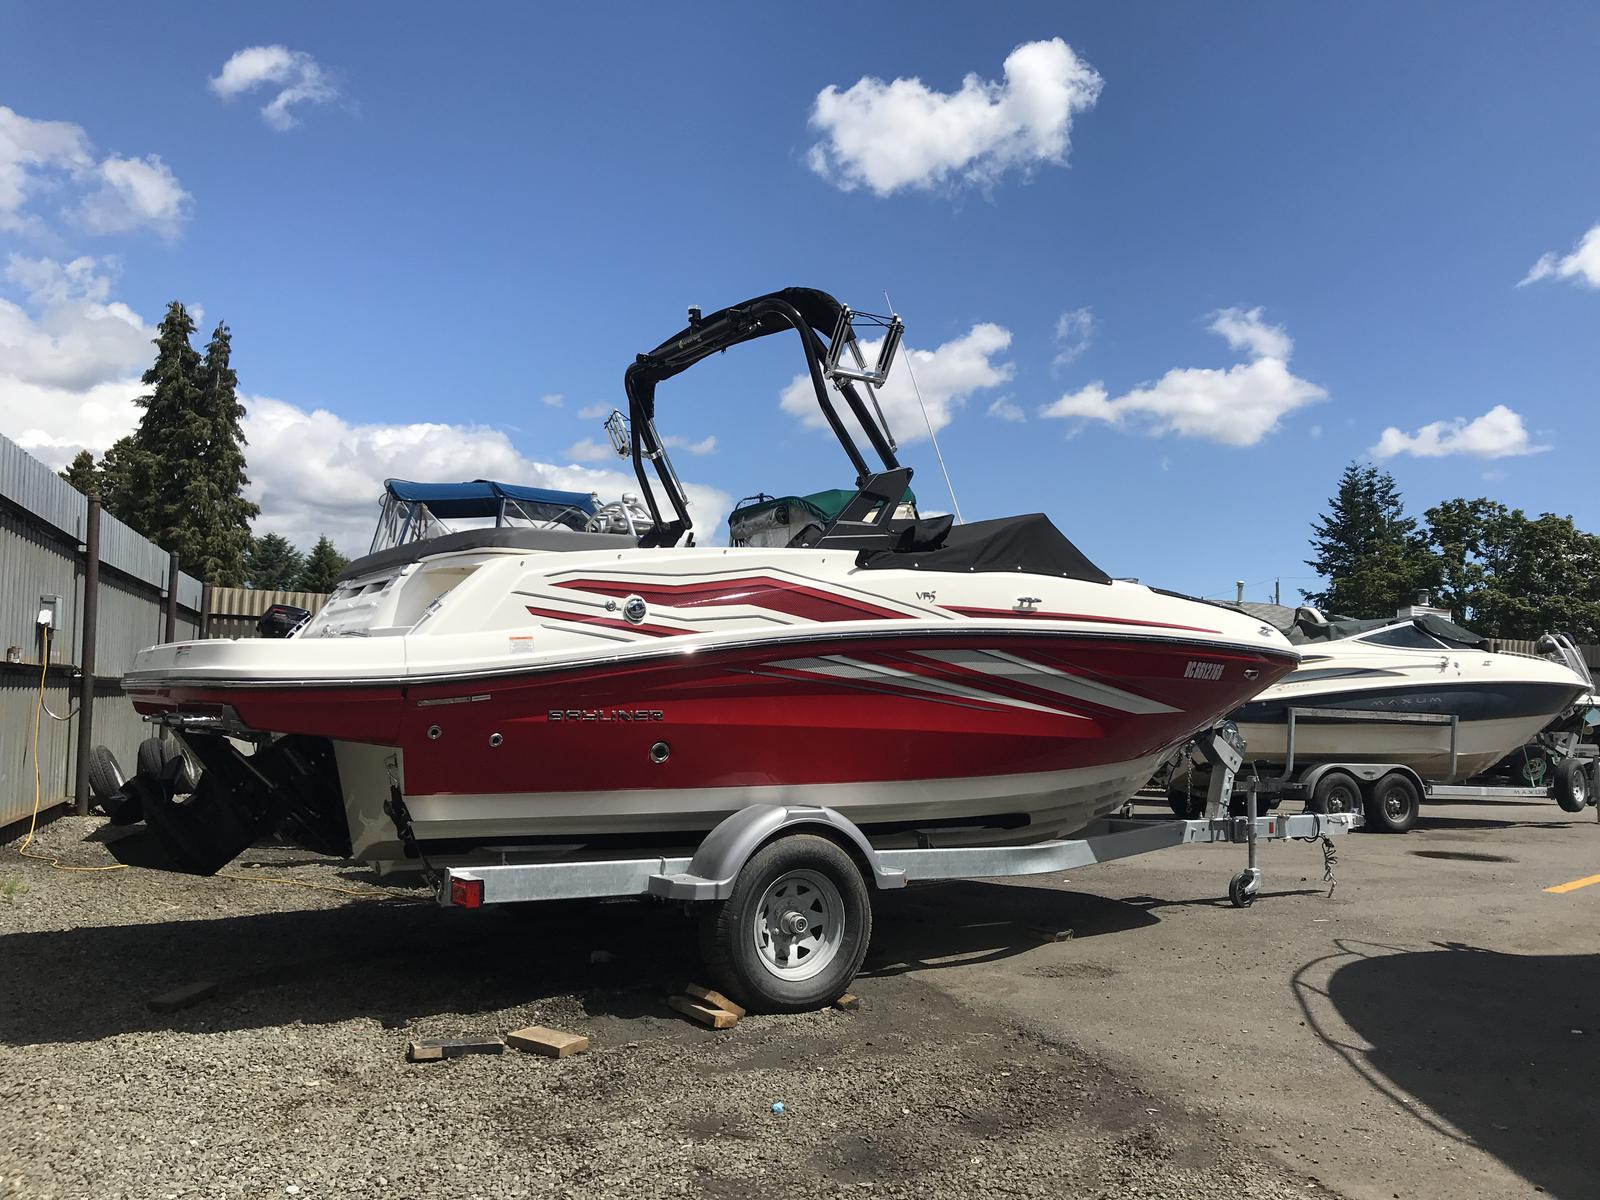 2019 Bayliner boat for sale, model of the boat is VR5 Bowrider & Image # 1 of 22